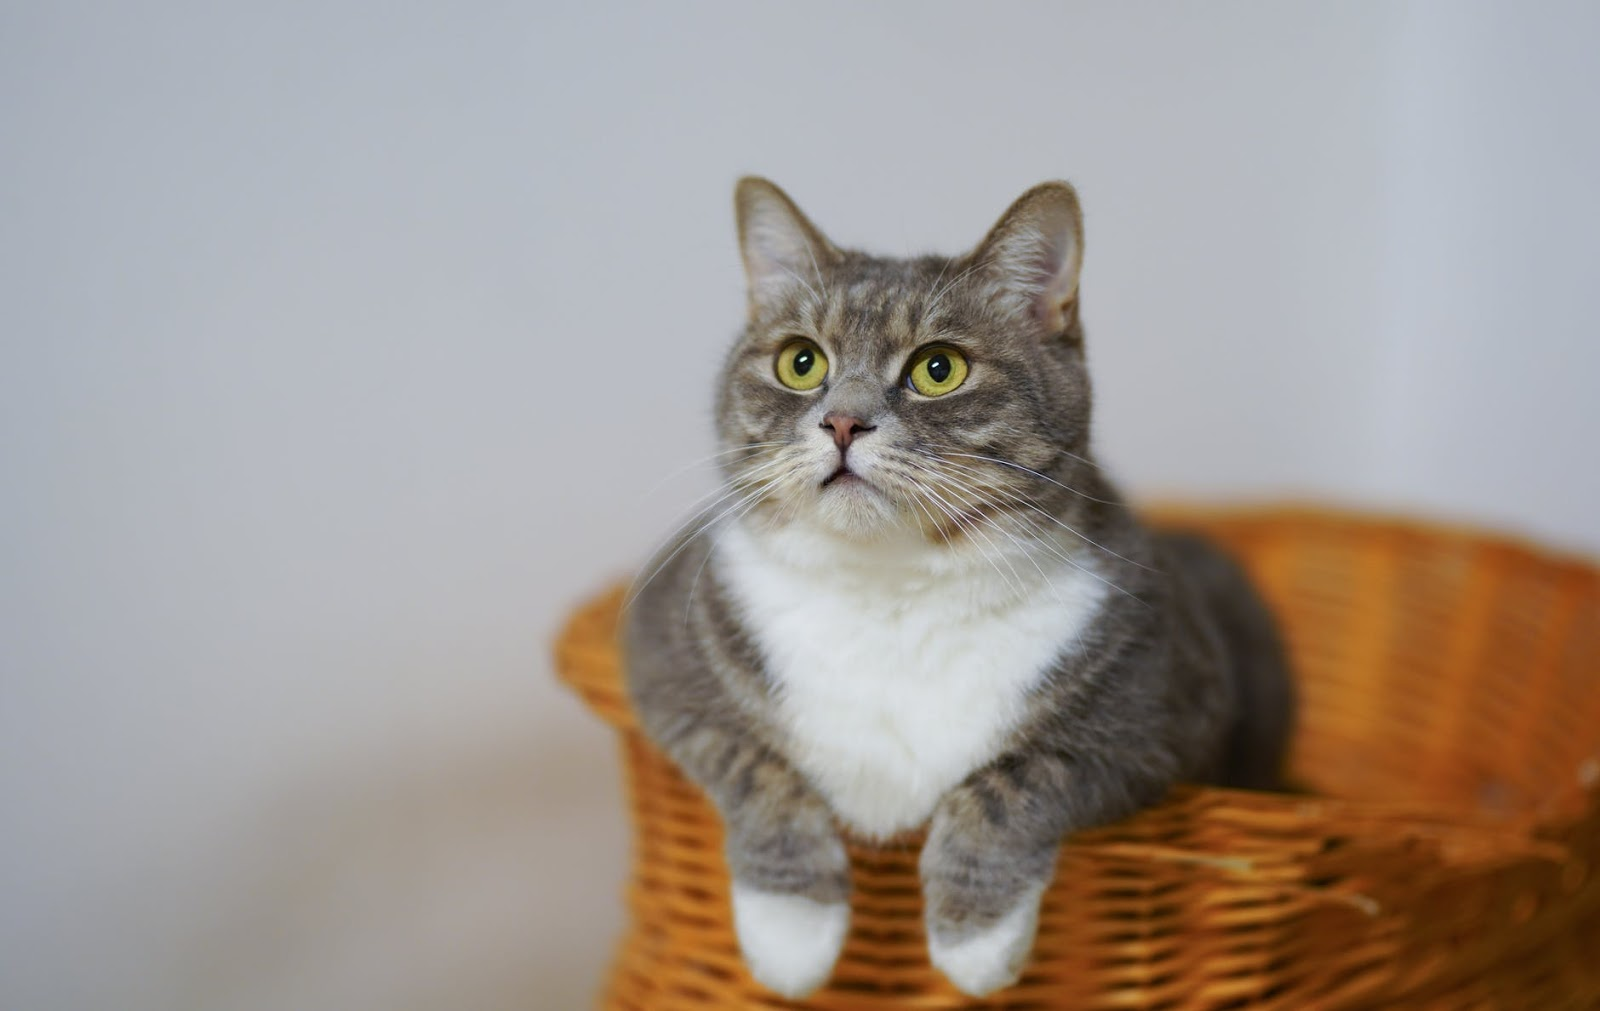 Cats can transmit Covid-19 to other cats but not humans, study confirms